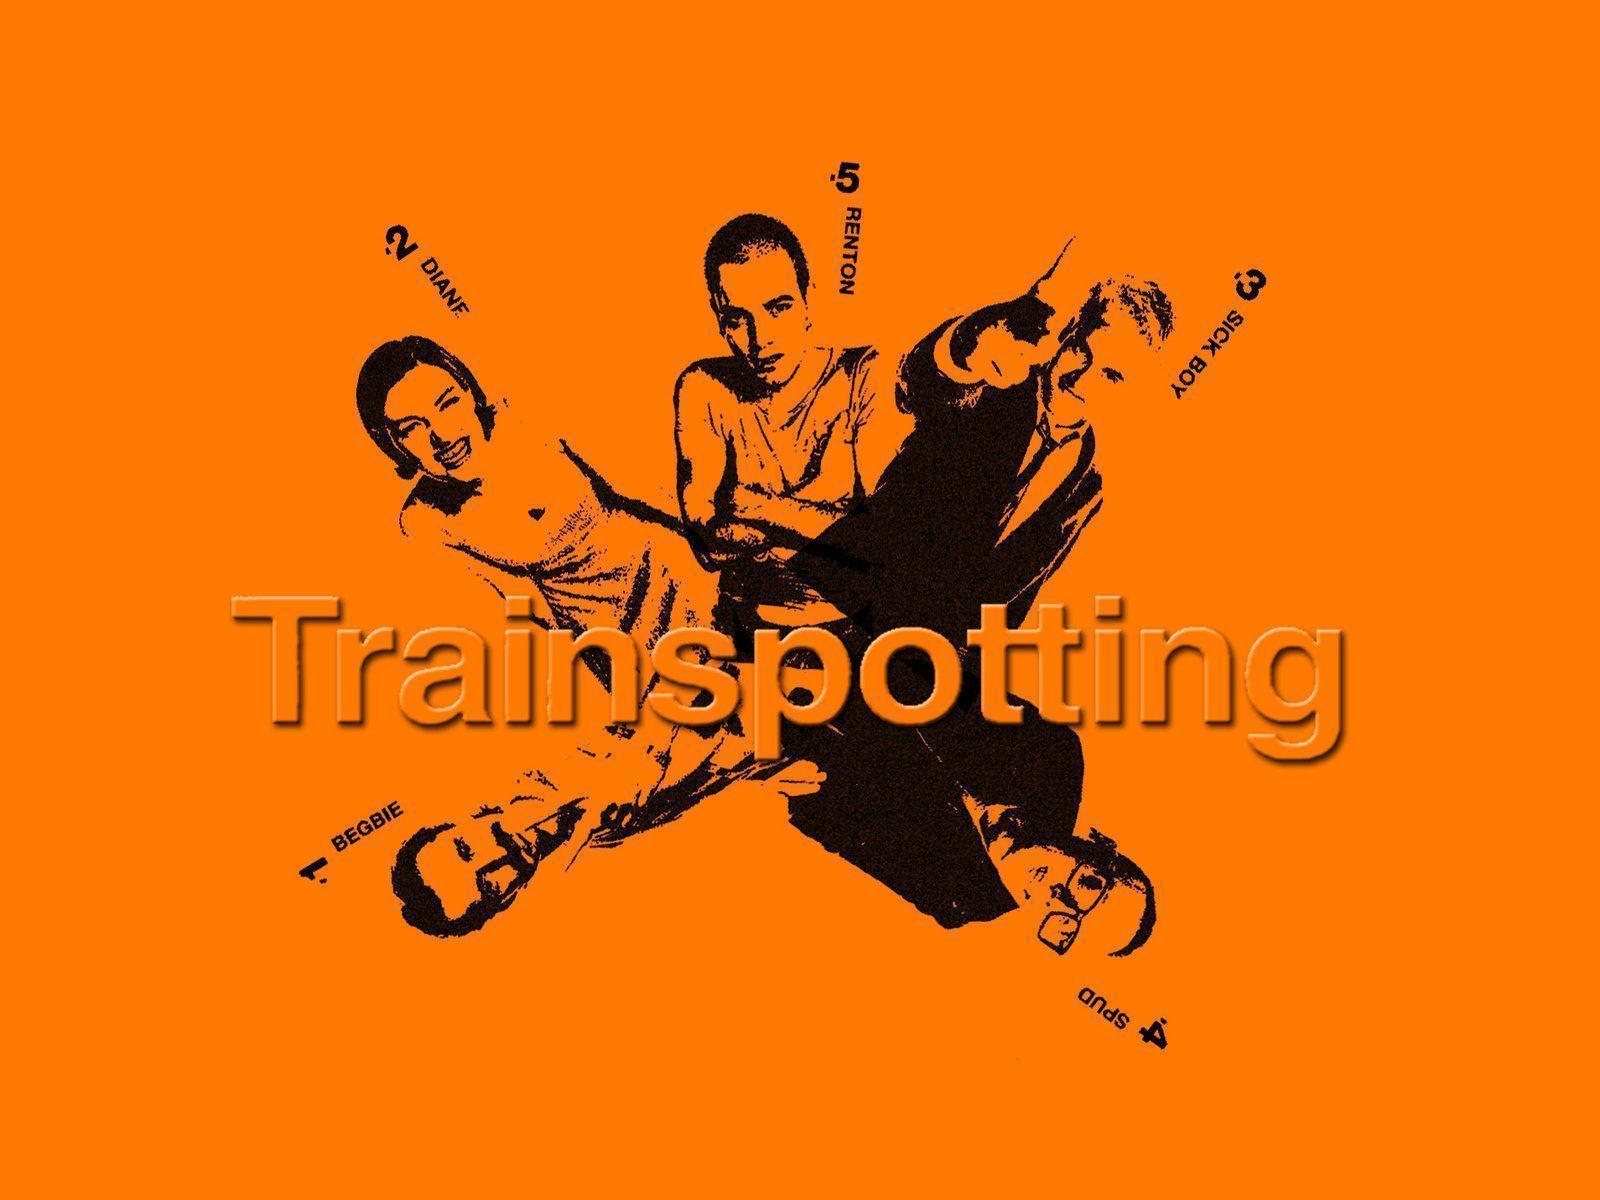 Trainspotting Wallpapers - Wallpaper Cave